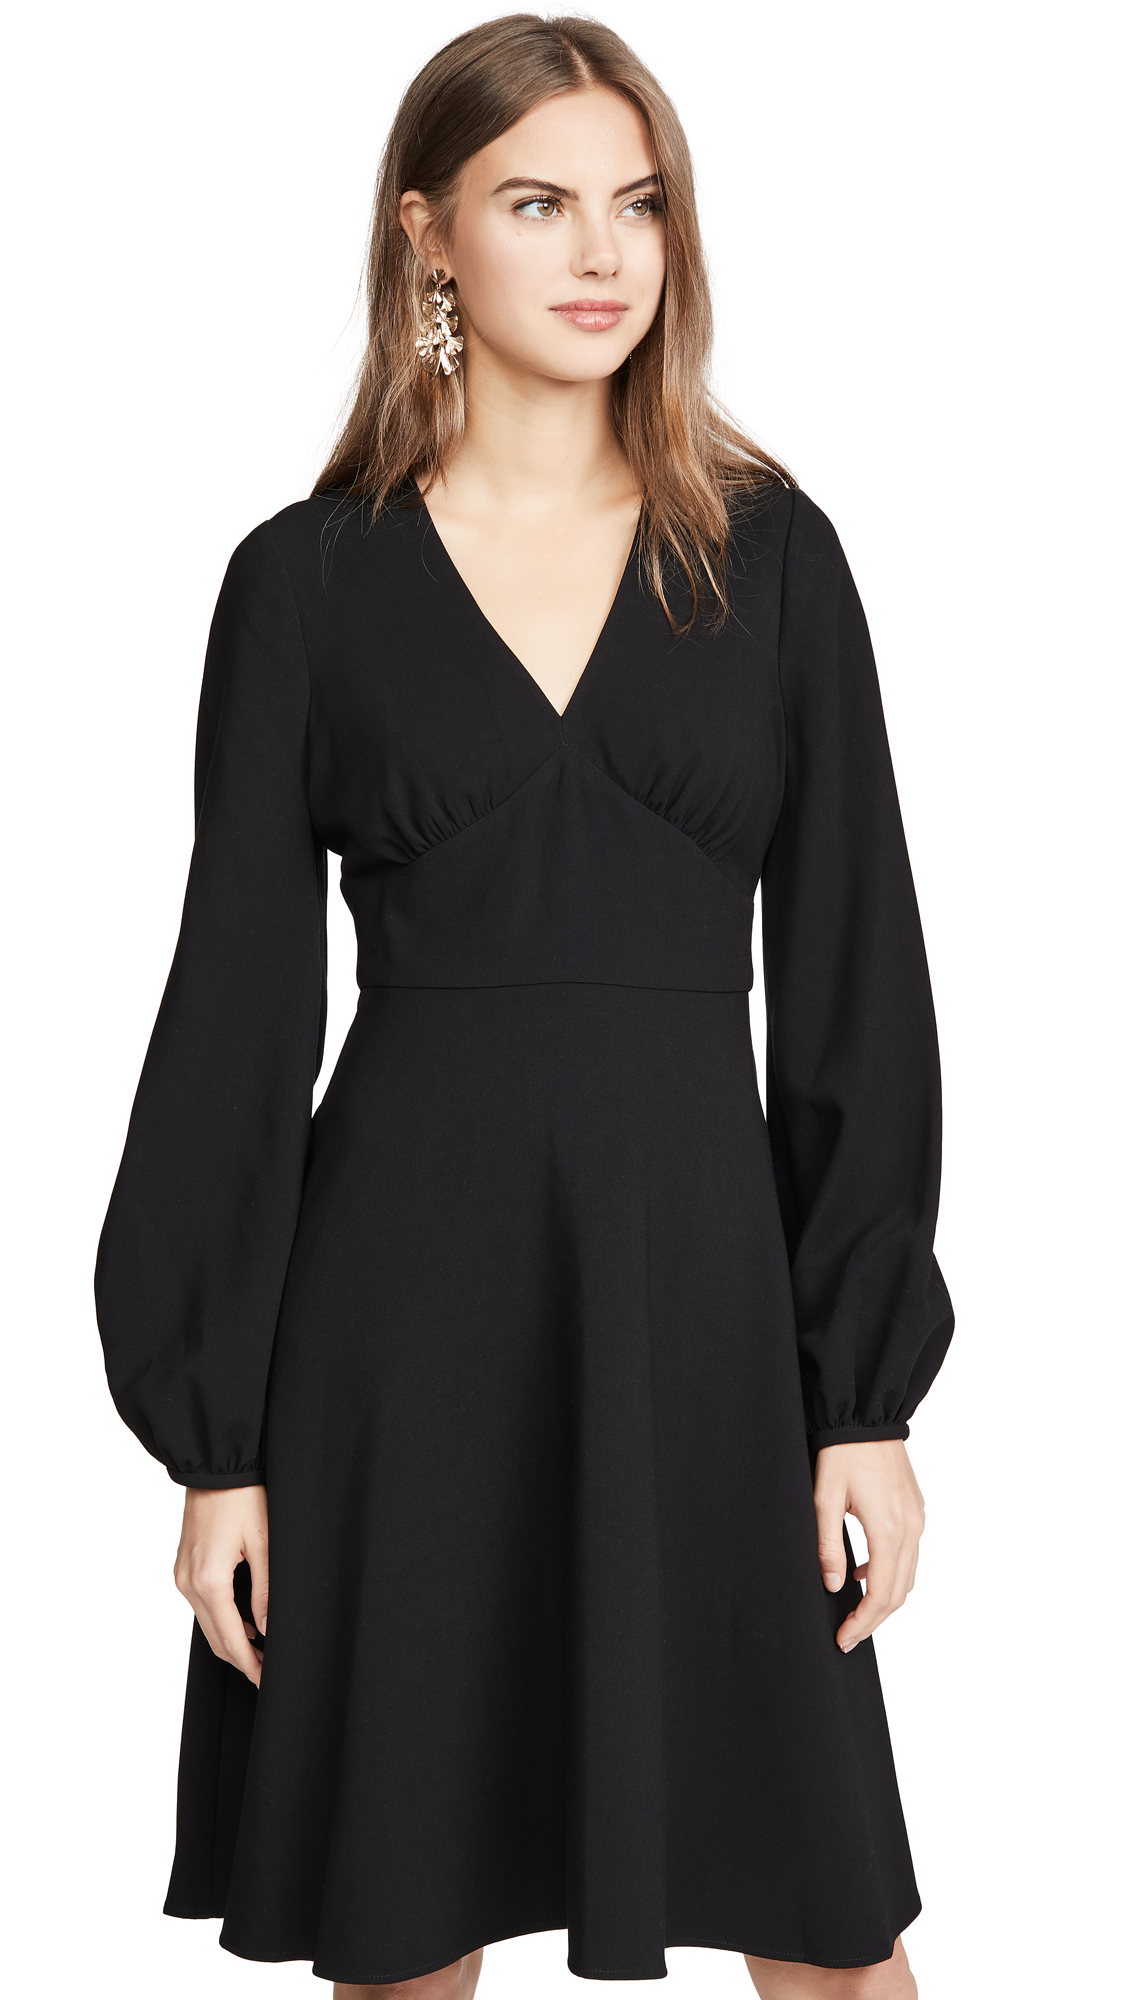 Black Halo Yvette Dress - 60% Off Sale